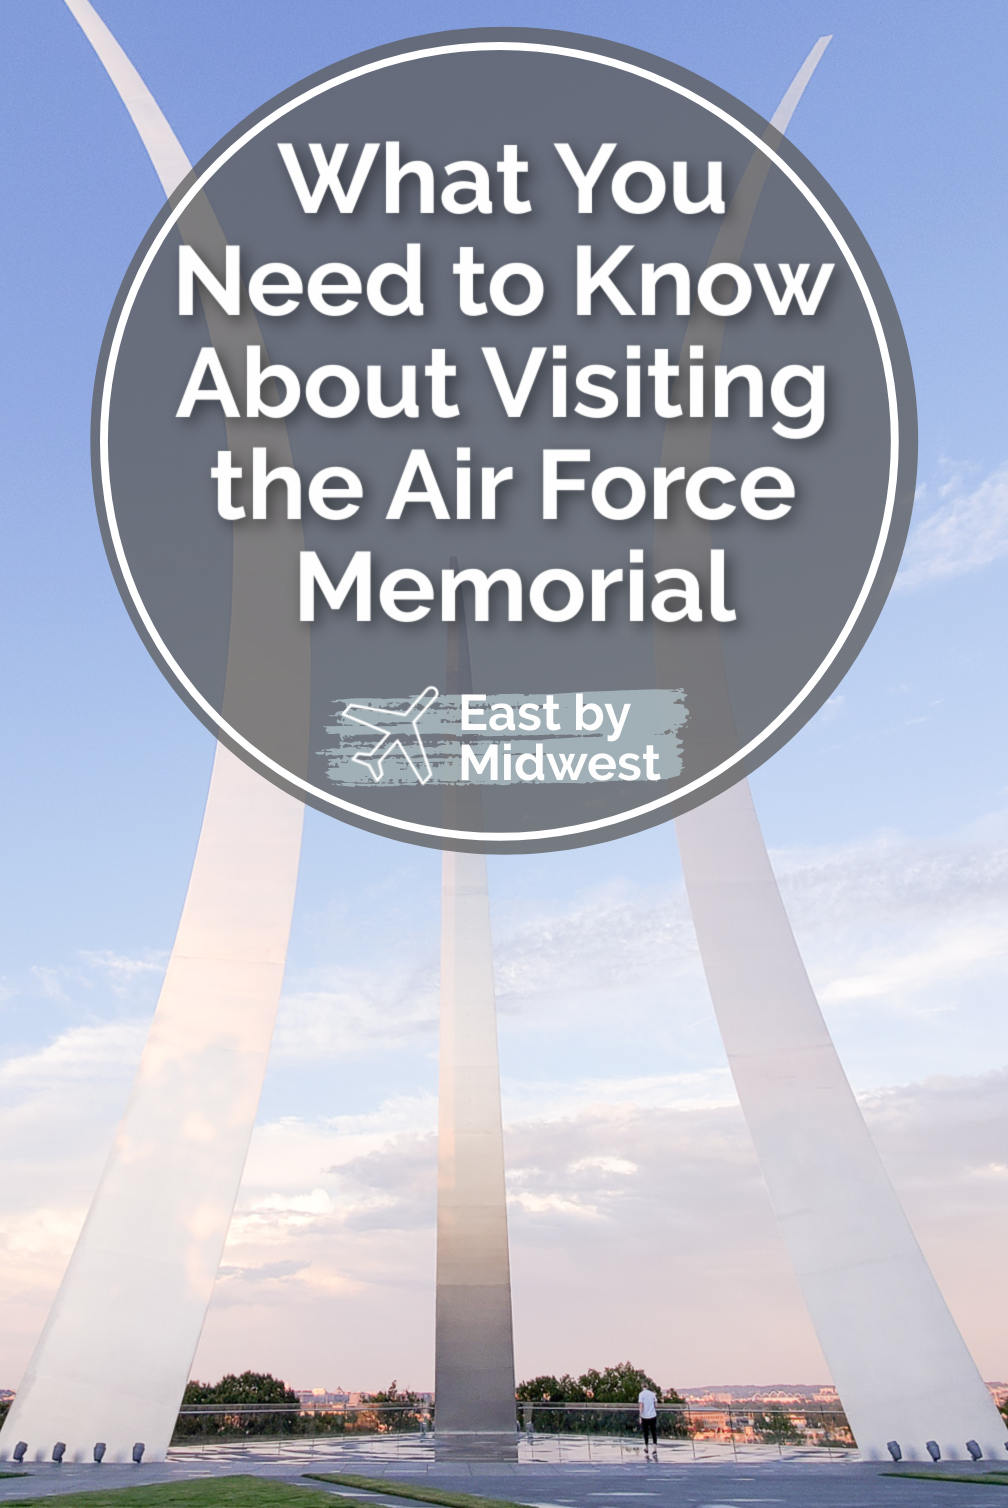 What You Need to Know About Visiting the Air Force Memorial